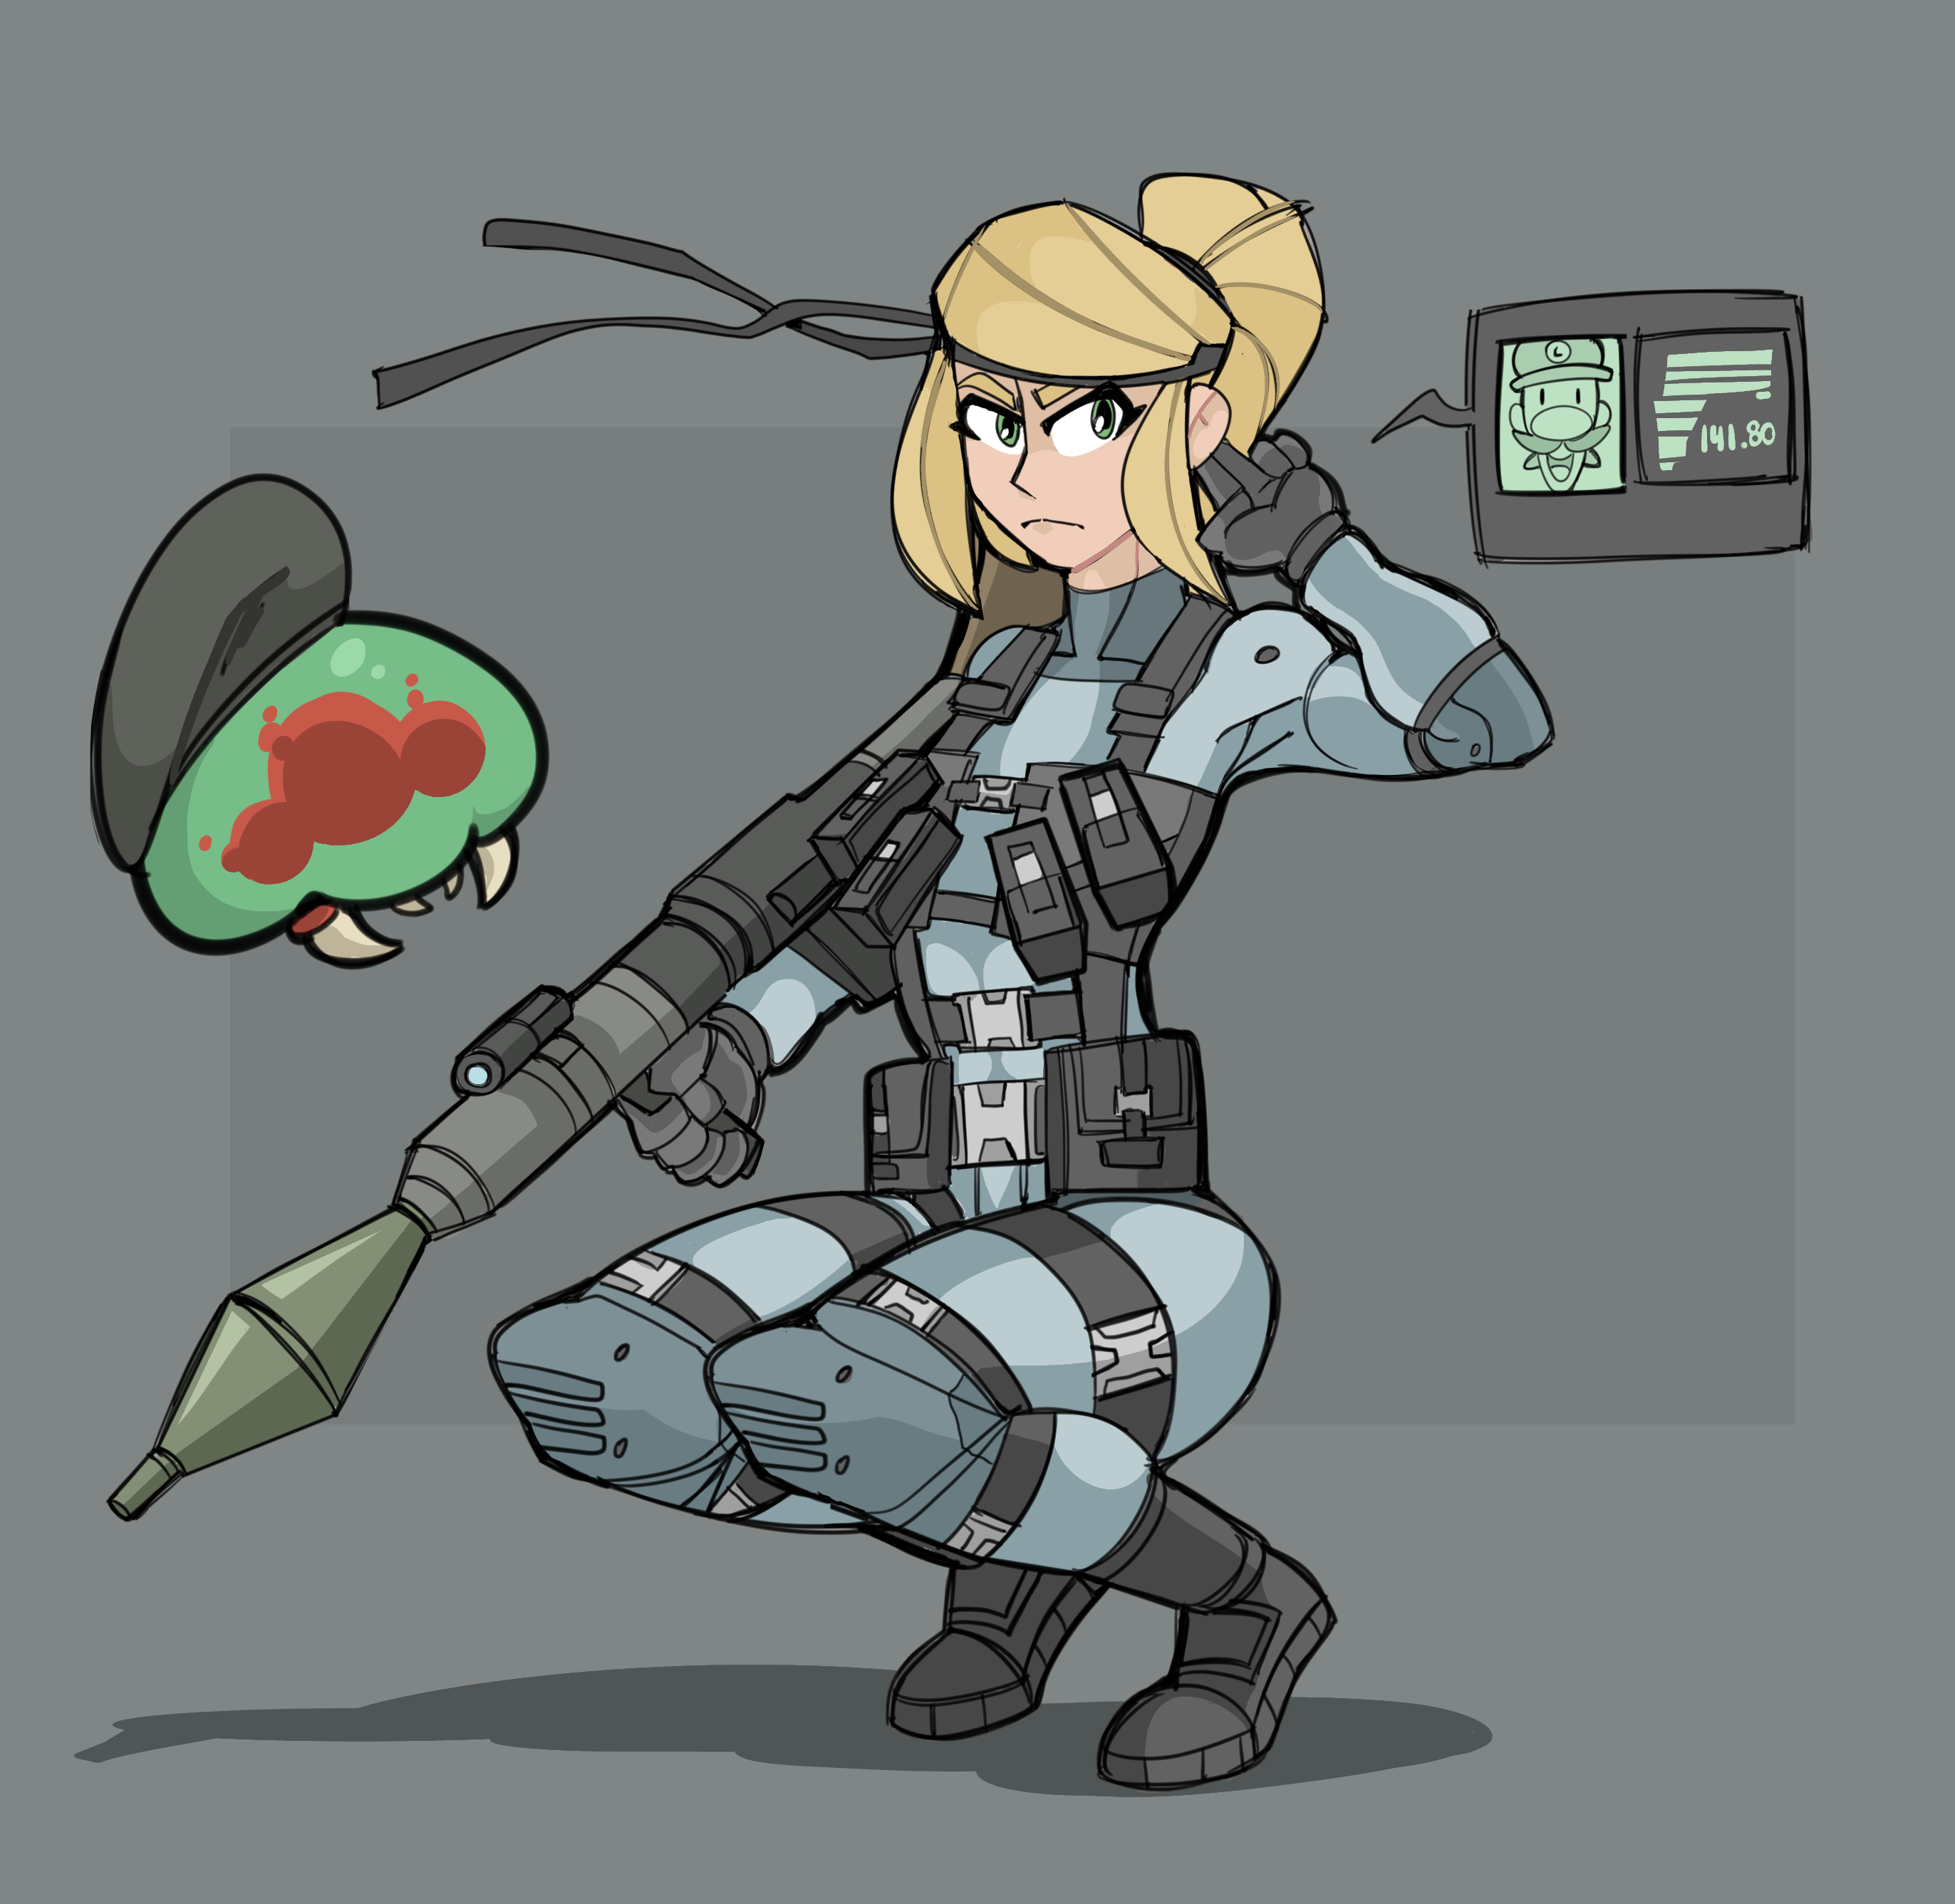 This is Samus. I'm done here.